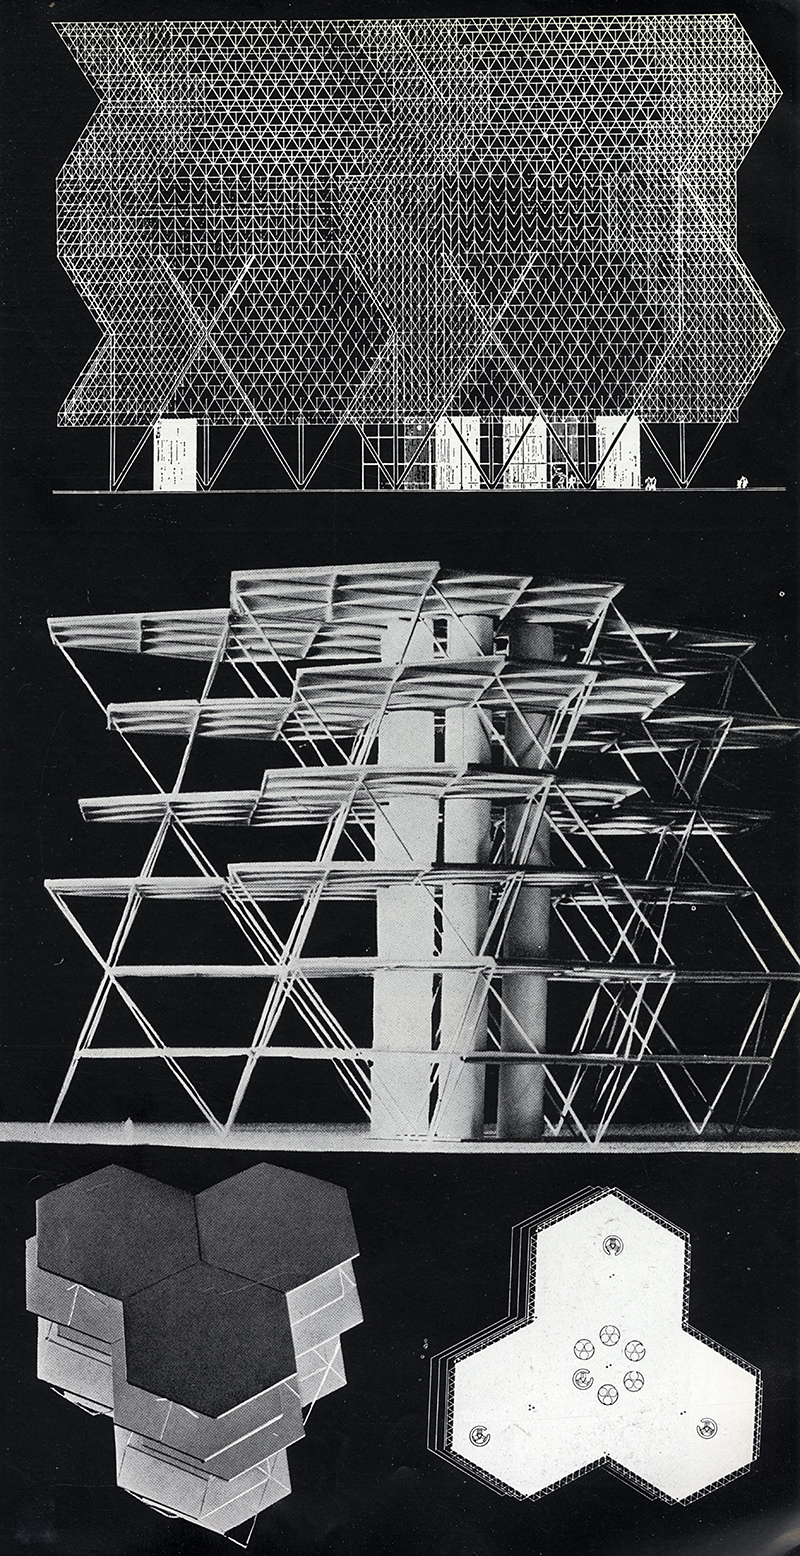 Louis Kahn. Architecture D'Aujourd'Hui v. 25 no. 55 Jul 1954, 11